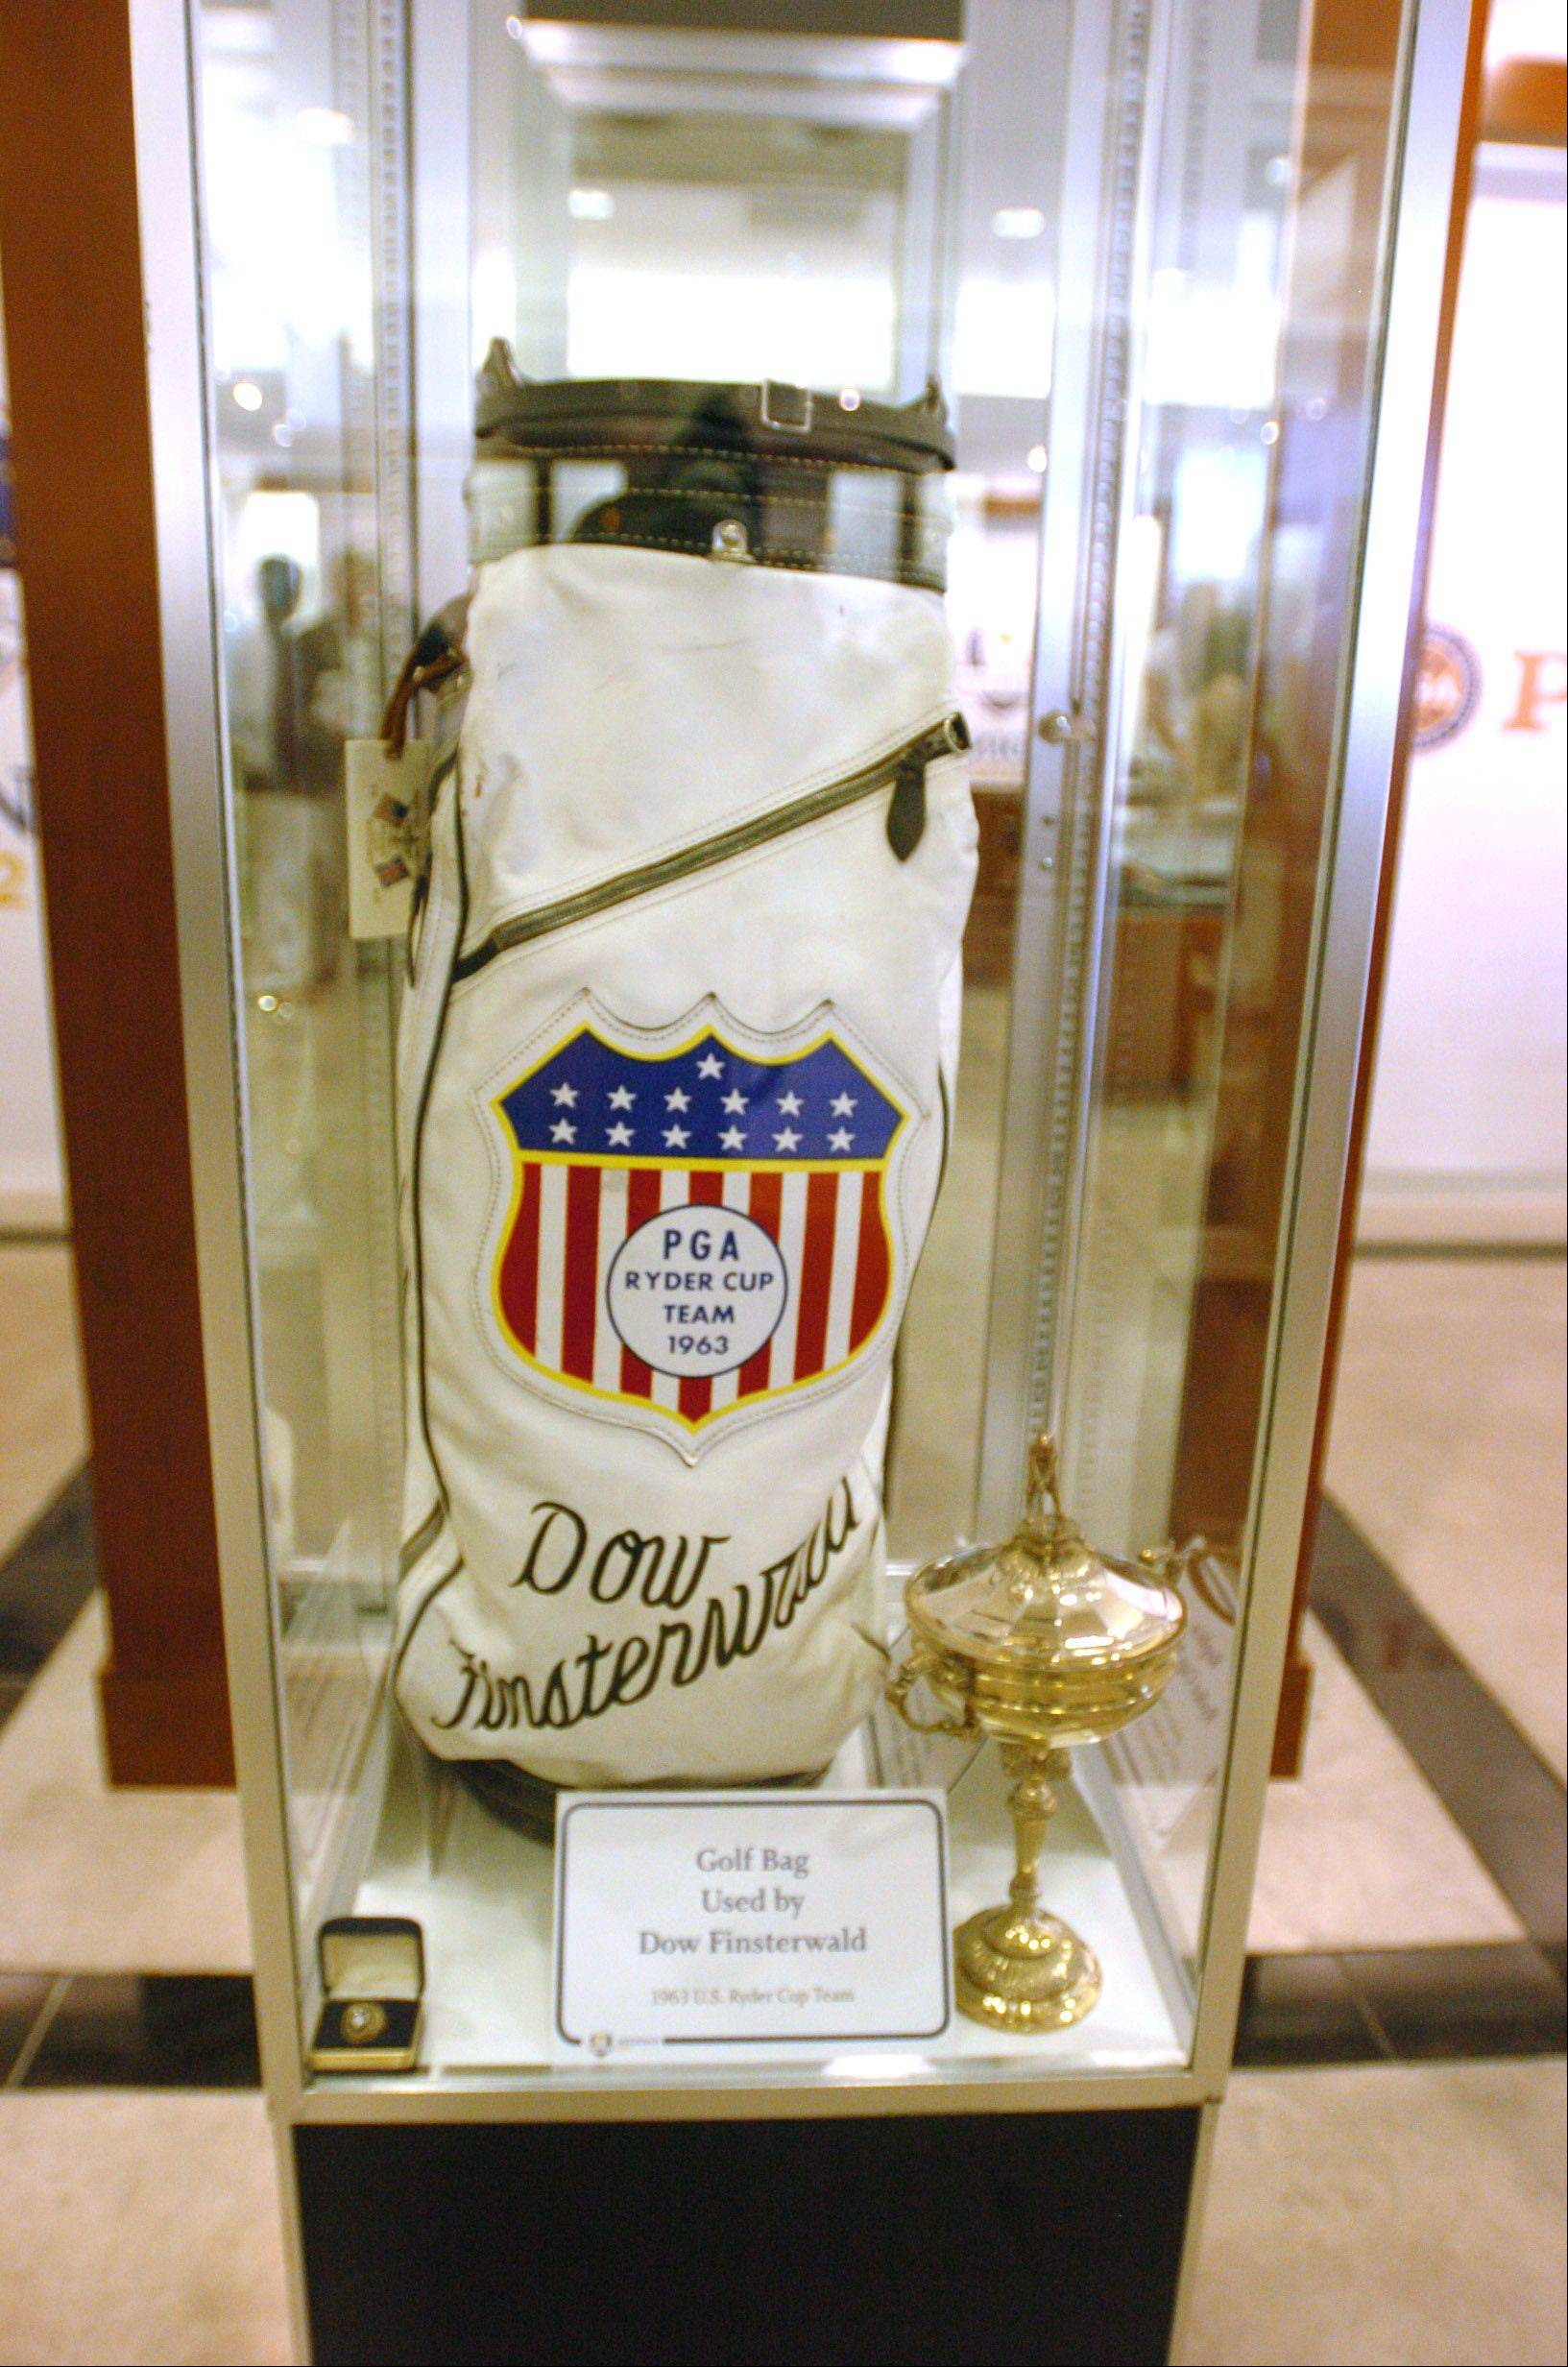 This golf bag was used by Dow Finsterwald for the 1963 Ryder Cup. It is among more than 60 items on display at the Ryder Cup Exhibit, which runs through Sept. 30 at Oakbrook Center.